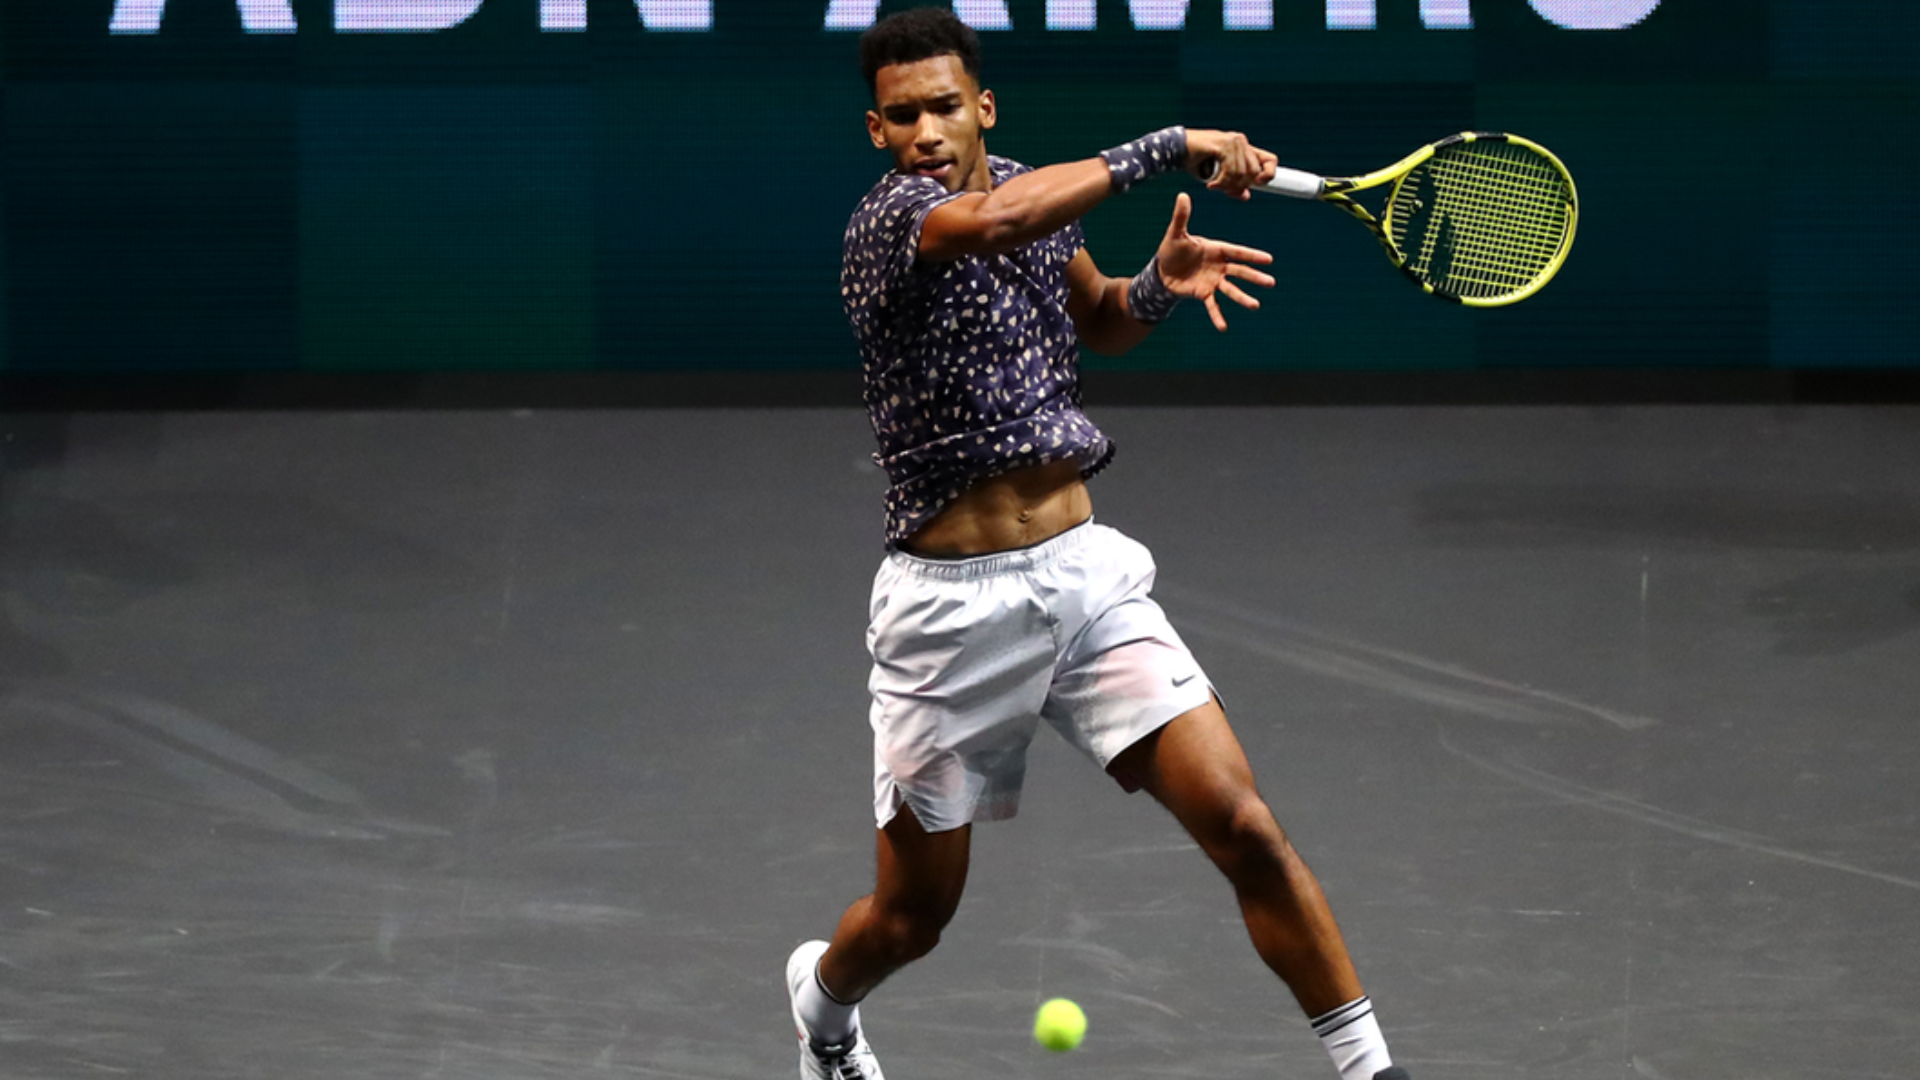 Felix Auger-Aliassime to face in-form Gael Monfils in bid for first ATP Tour title